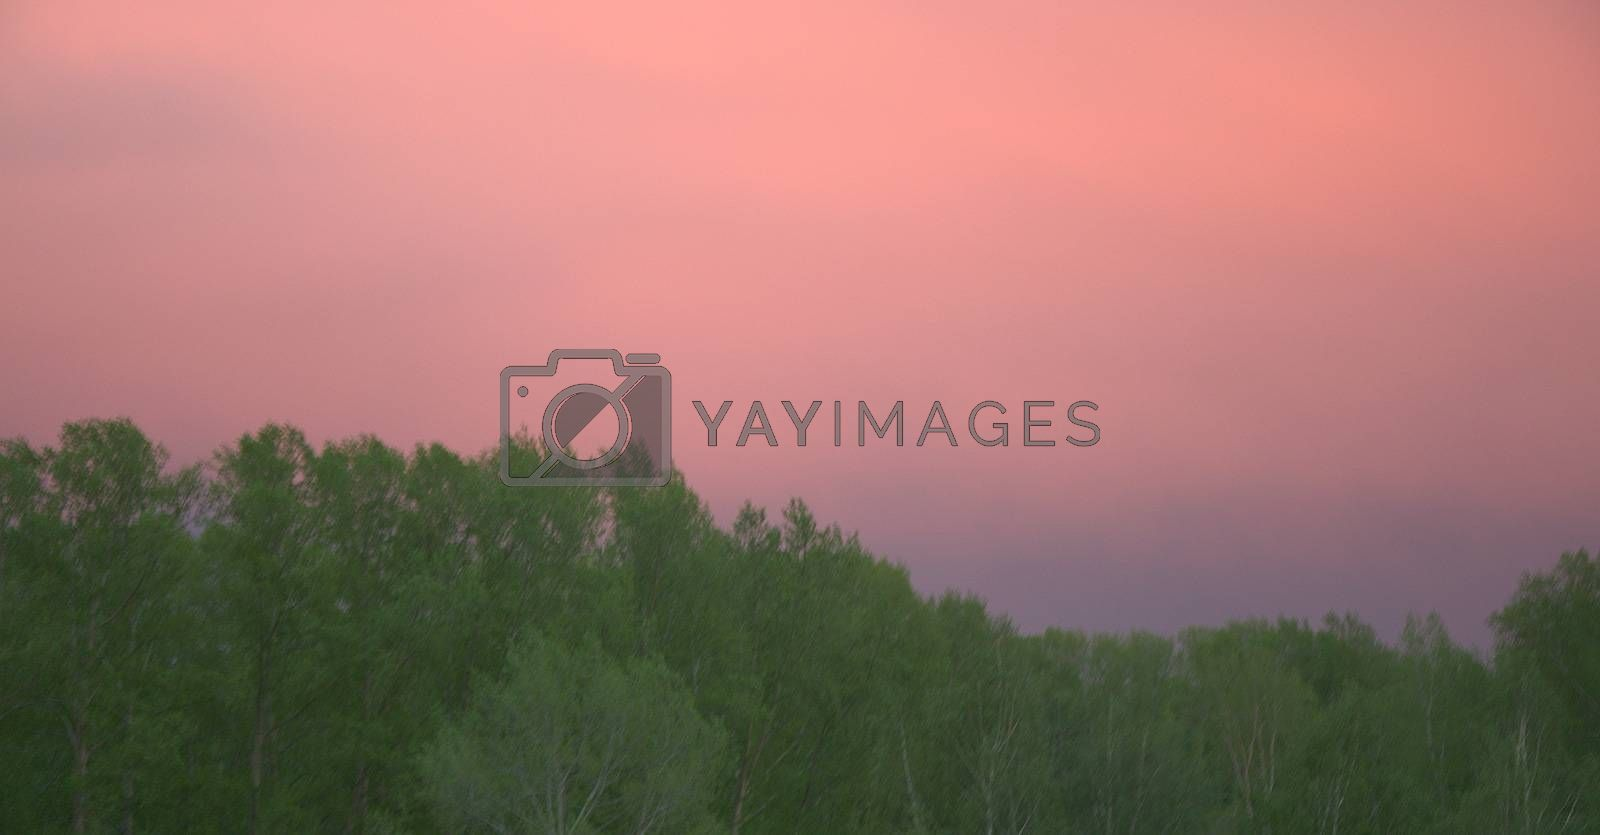 Cumulus clouds painted in pink at sunset. on the background of green forest.